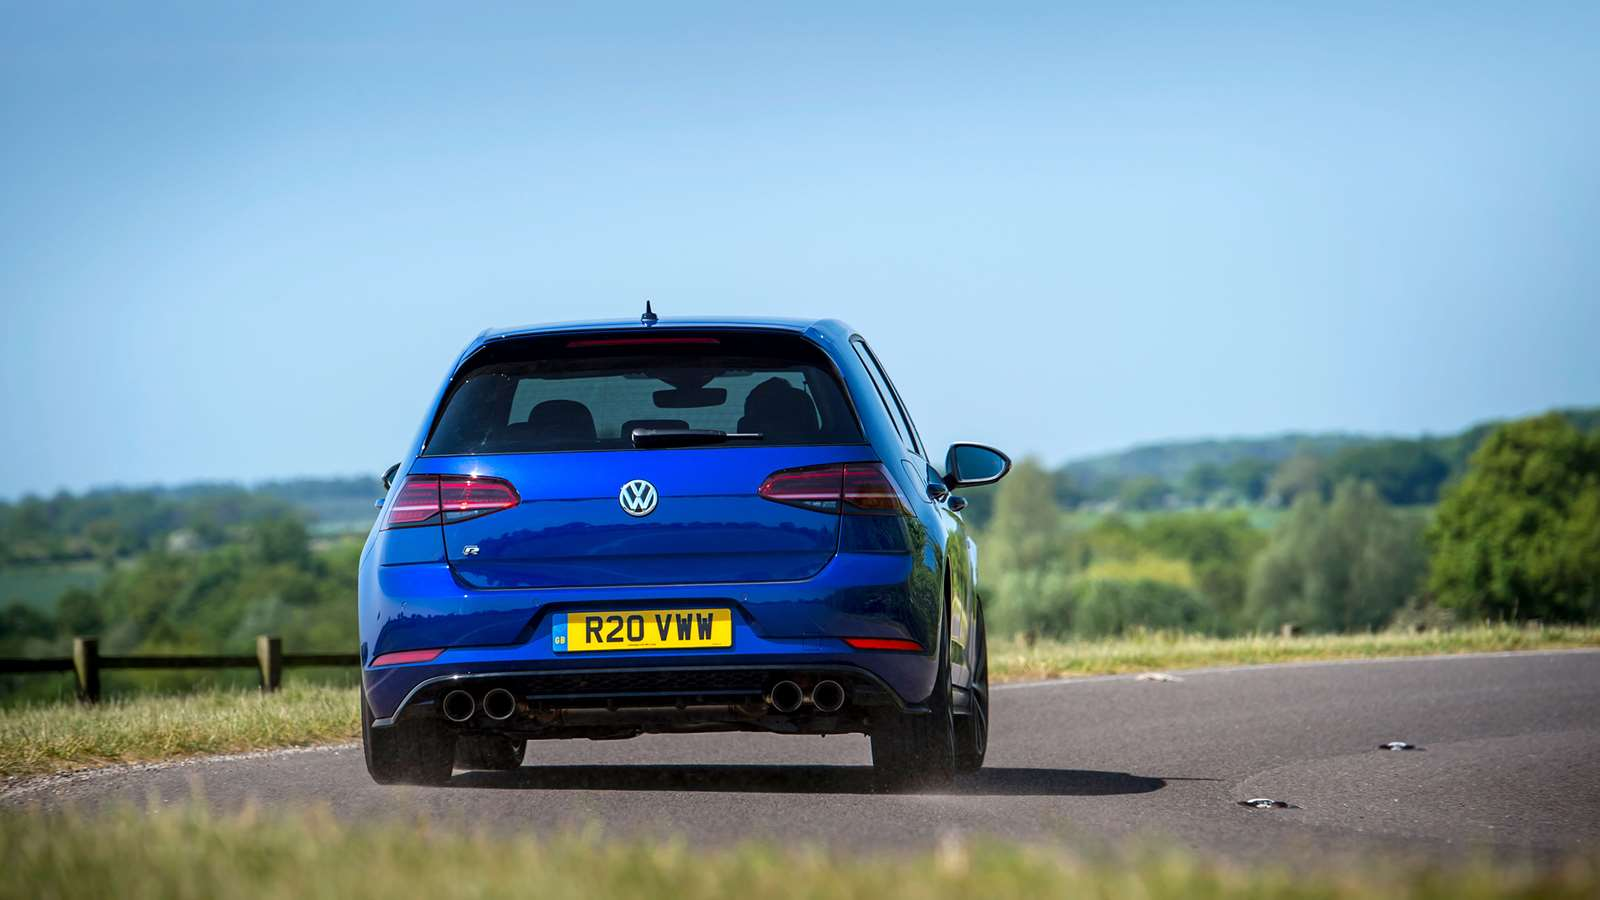 The 10 best hot hatchbacks of 2019